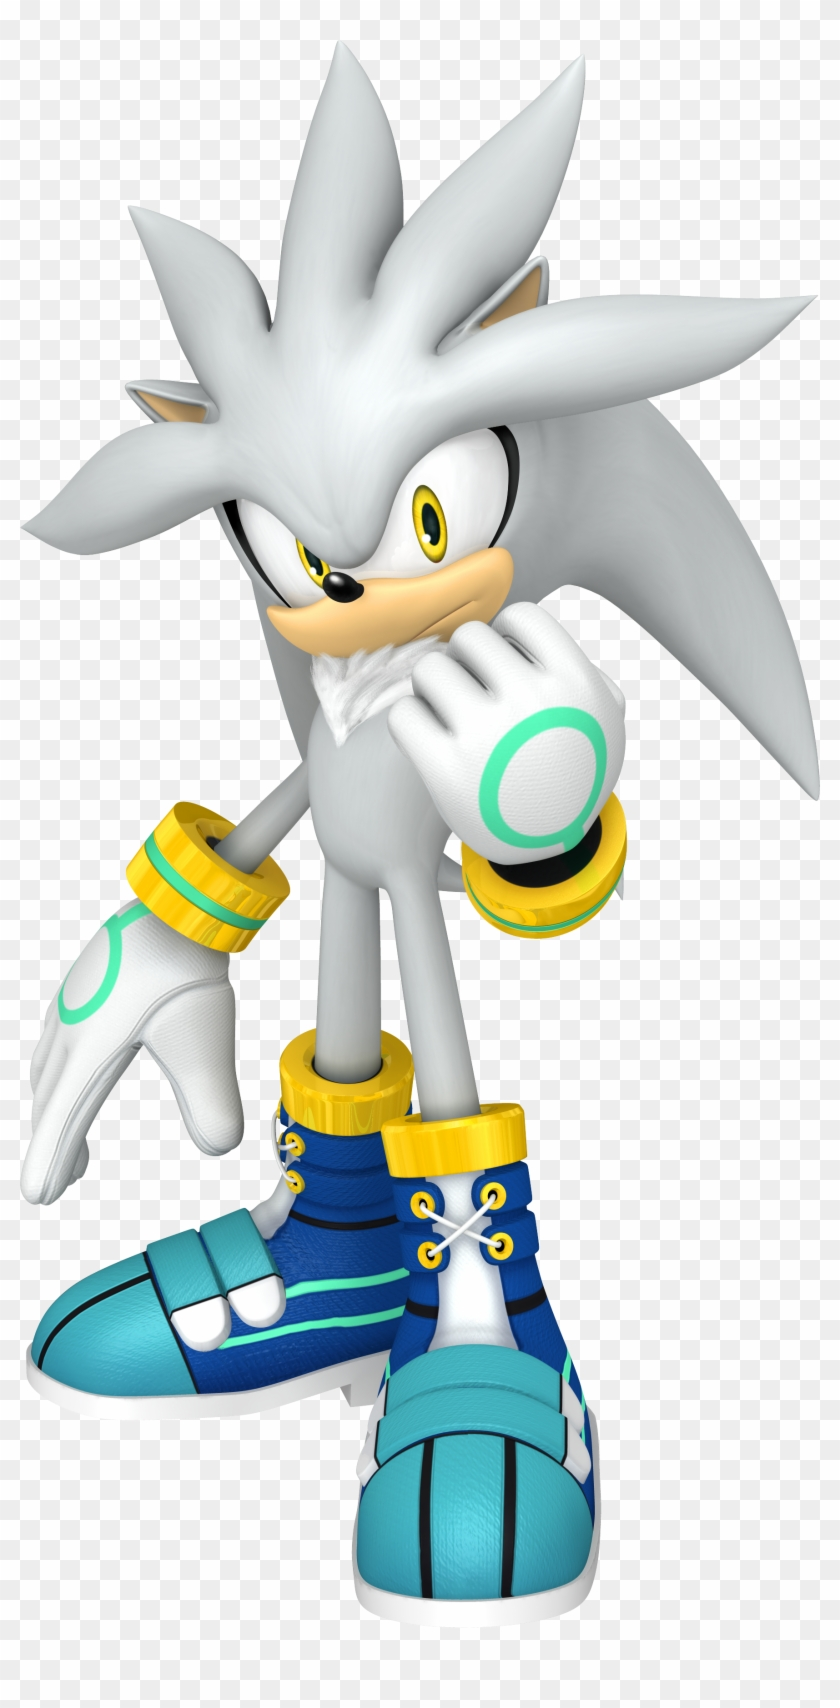 Sonic Hedgehog Coloring Pages On Sonic Free Riders Sonic Hedgehog Coloring Pages On Sonic Free Riders Free Transparent Png Clipart Images Download